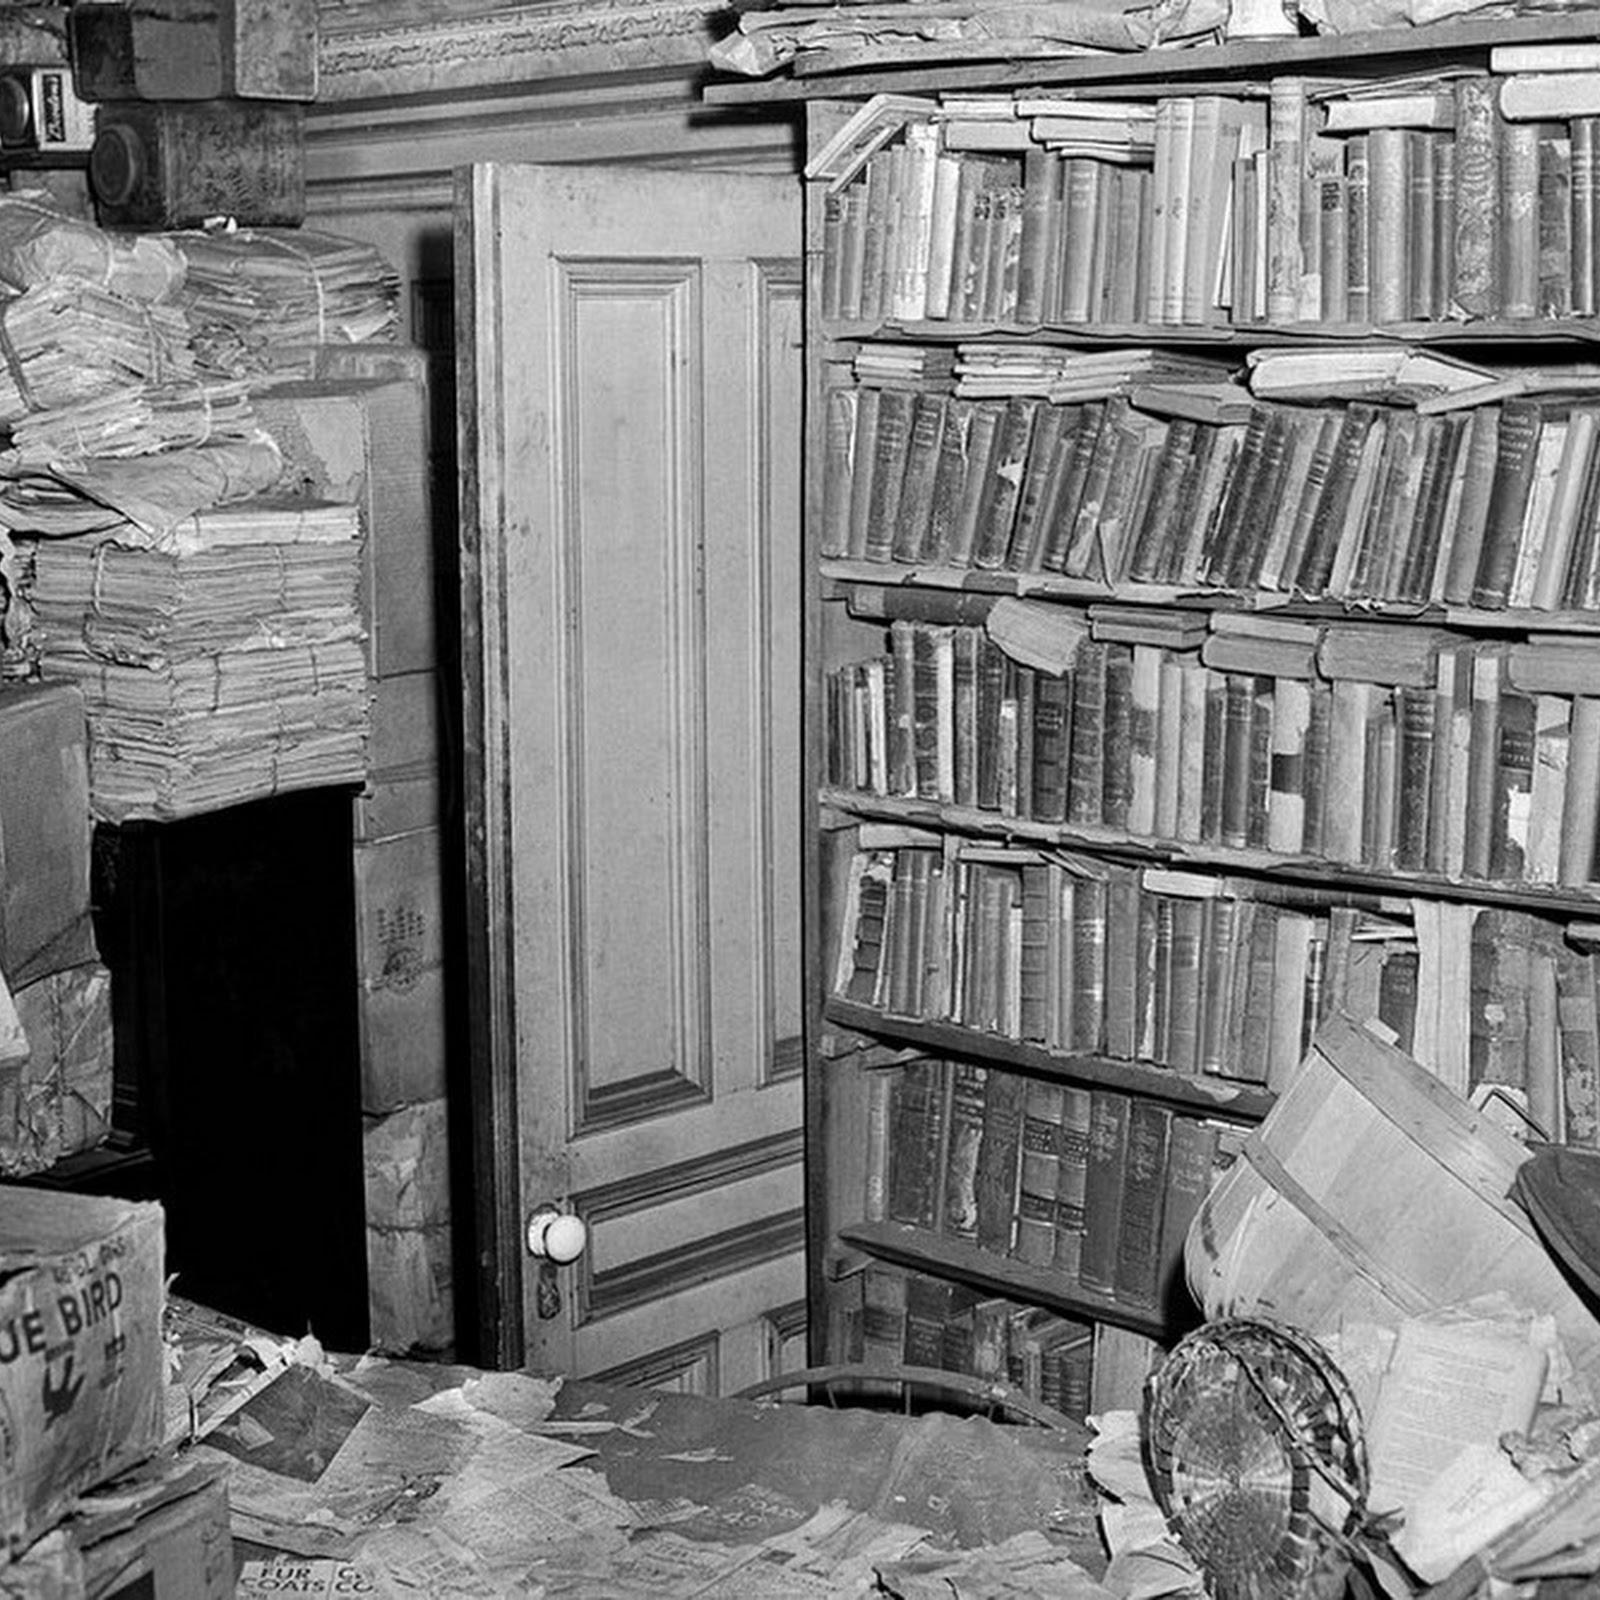 The Collyer Brothers: History's Worst Hoarders